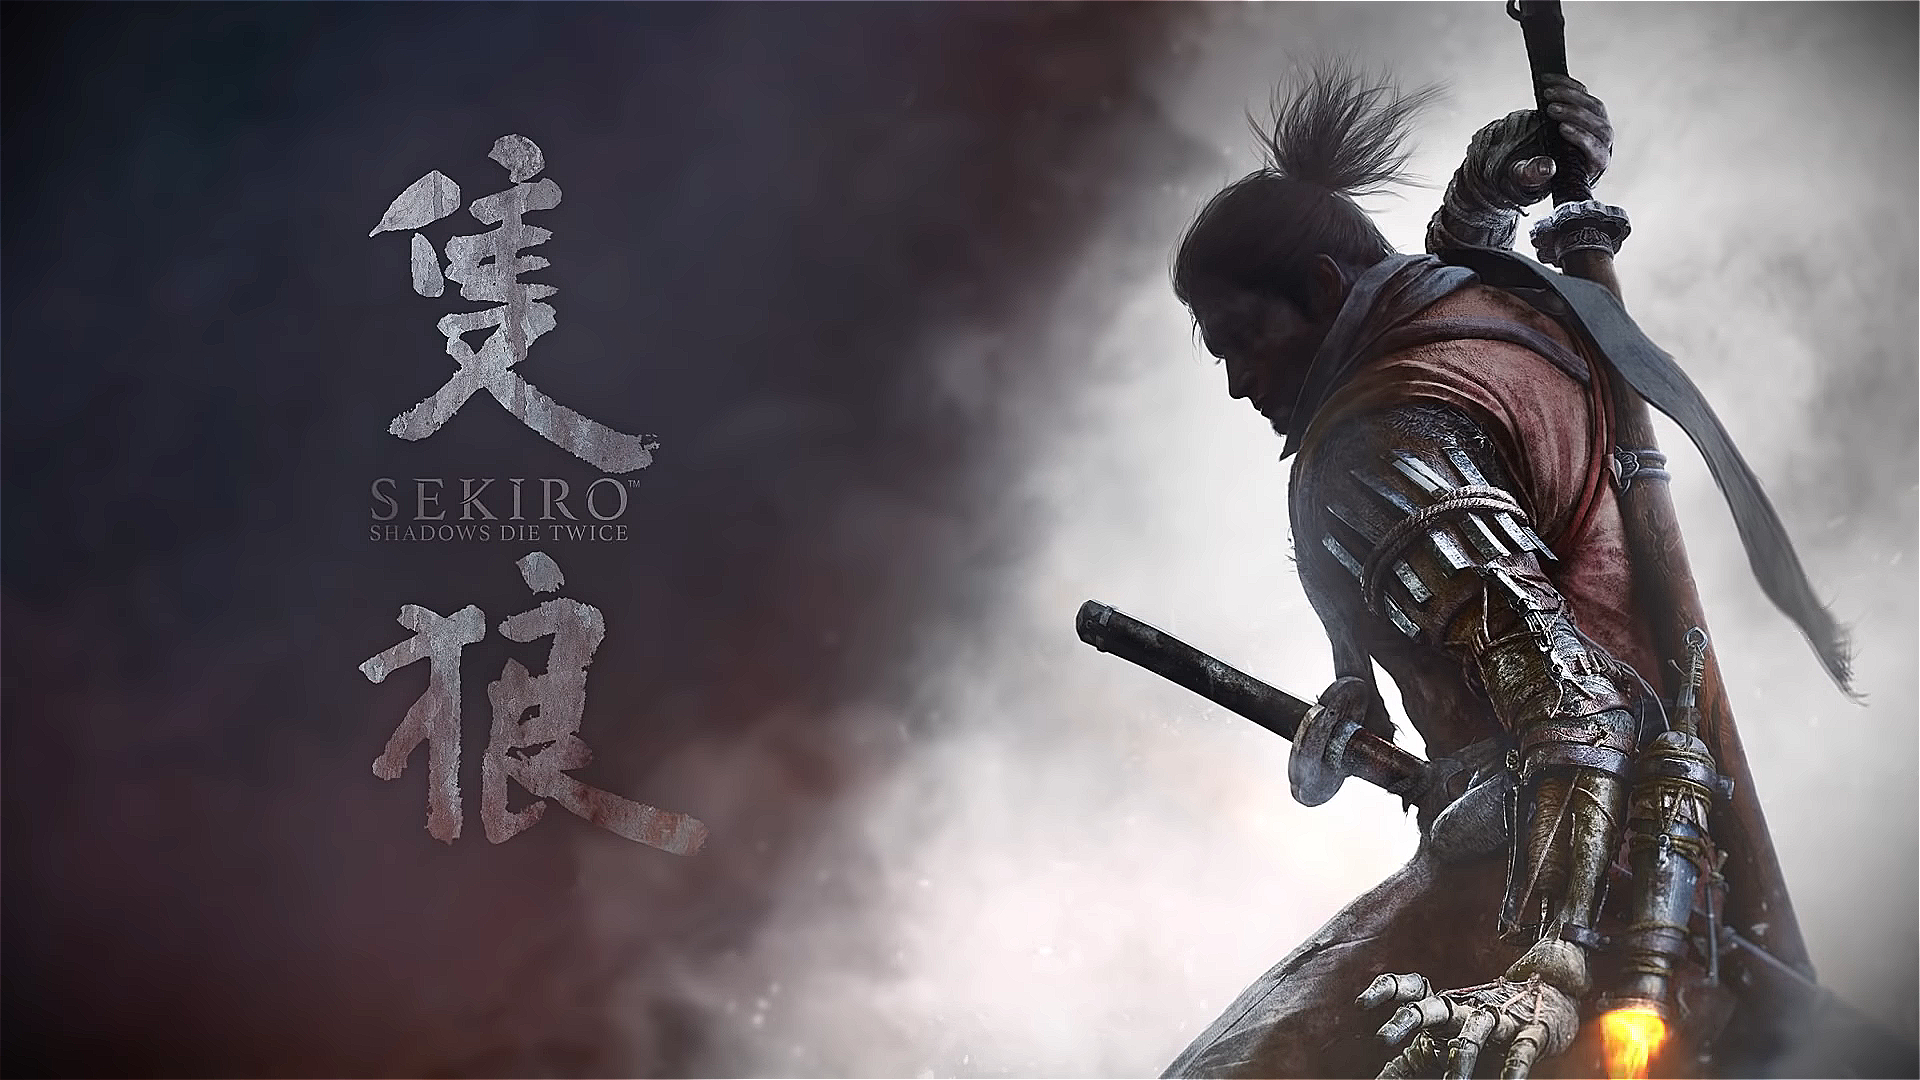 Sekiro Shadows Die Twice 4 Ps4wallpapers Com